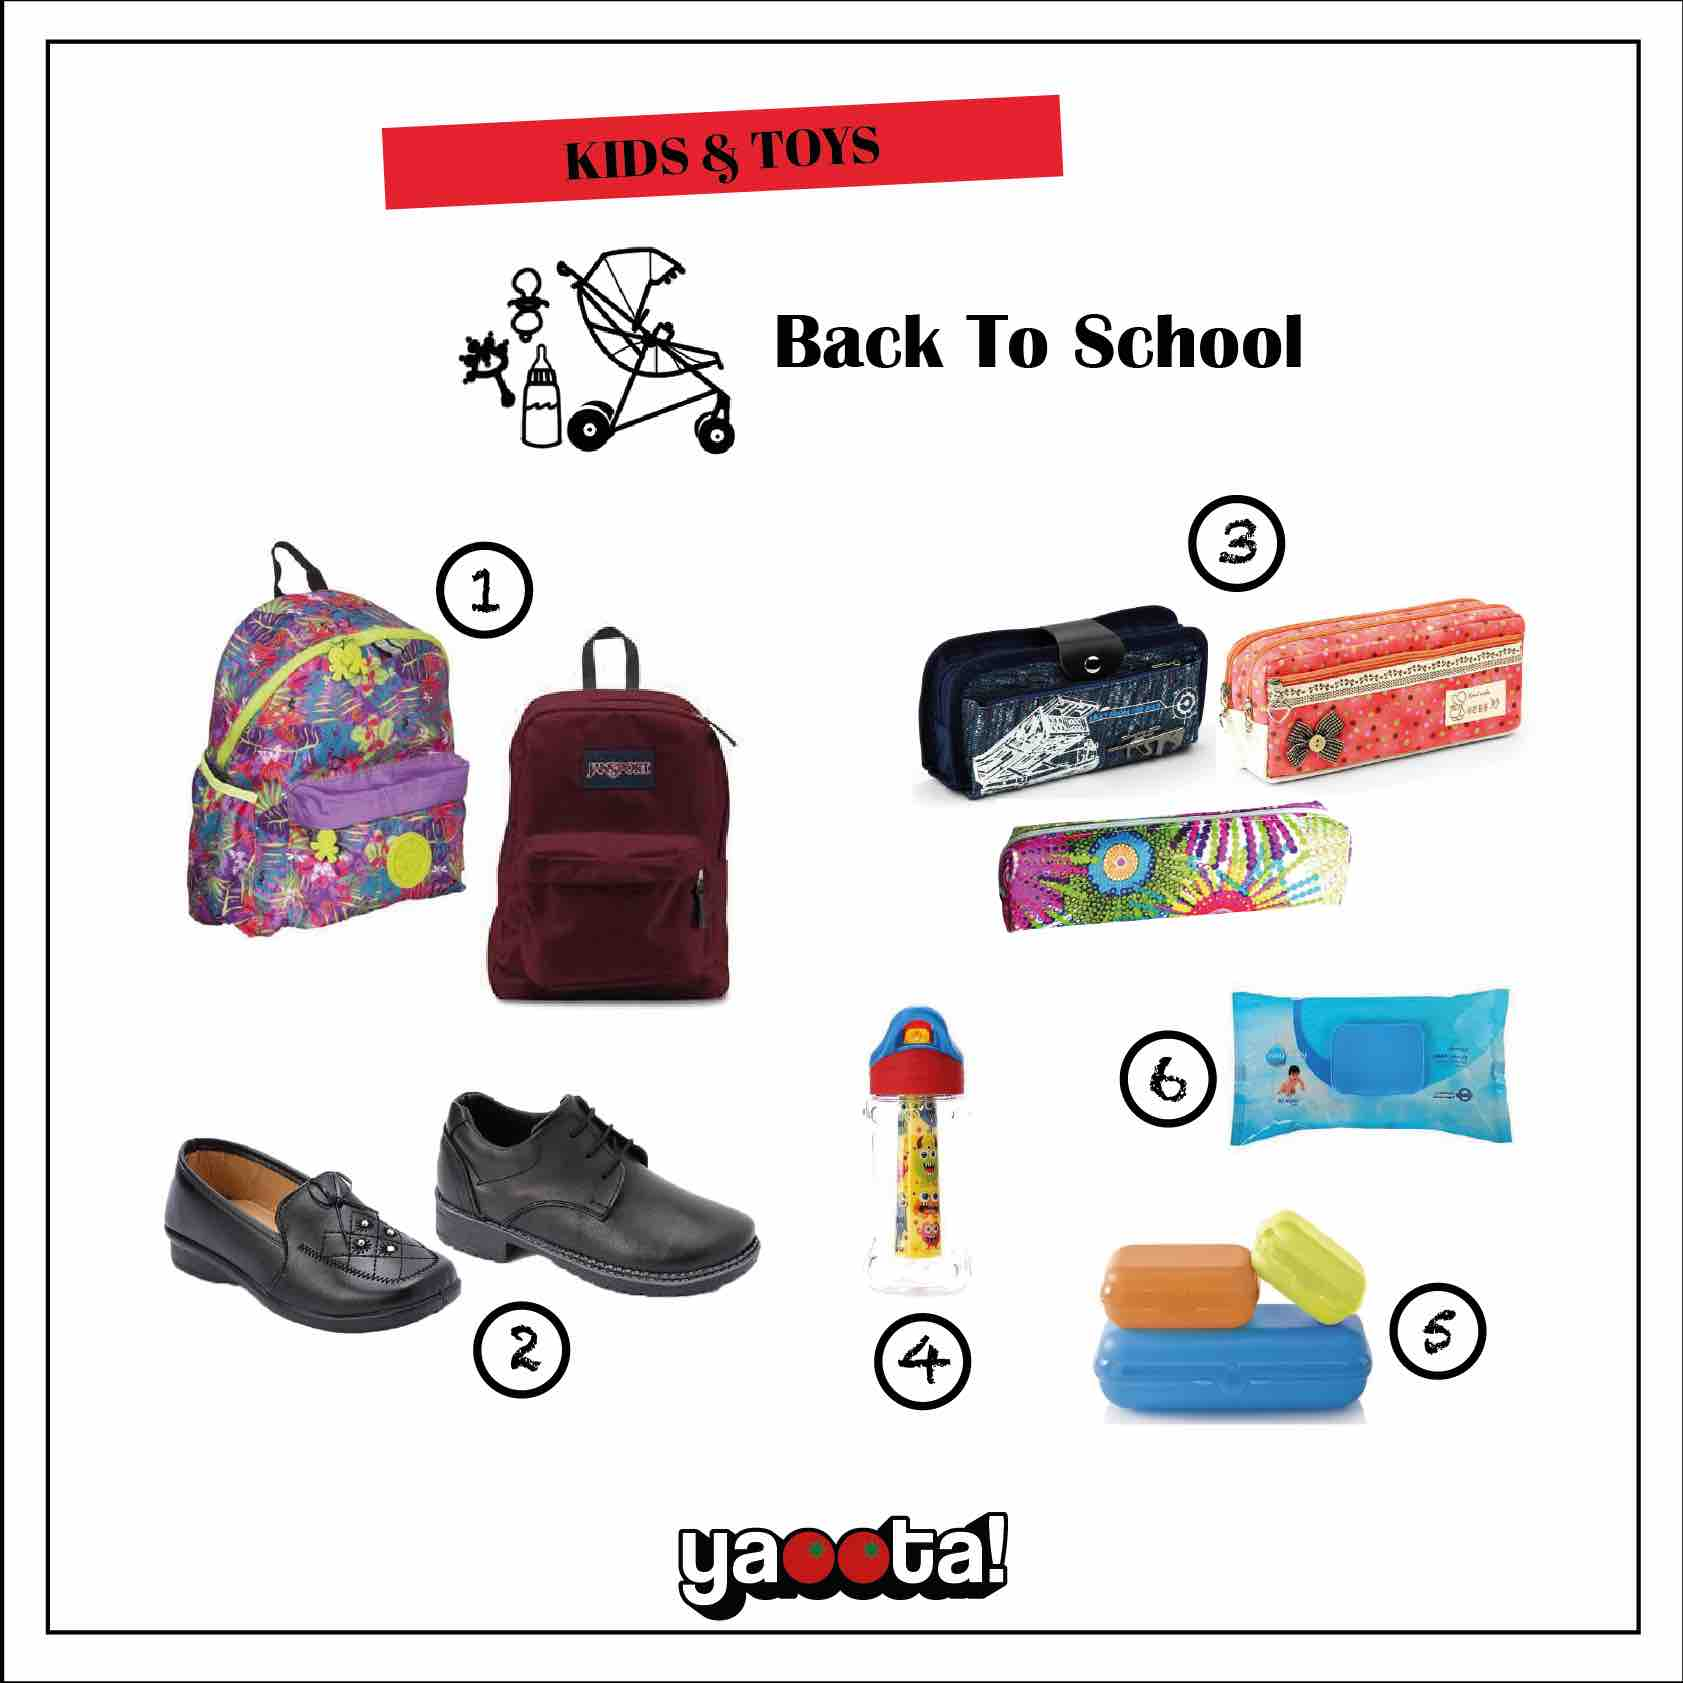 back-to-school-6-must-haves-before-going-back-to-school